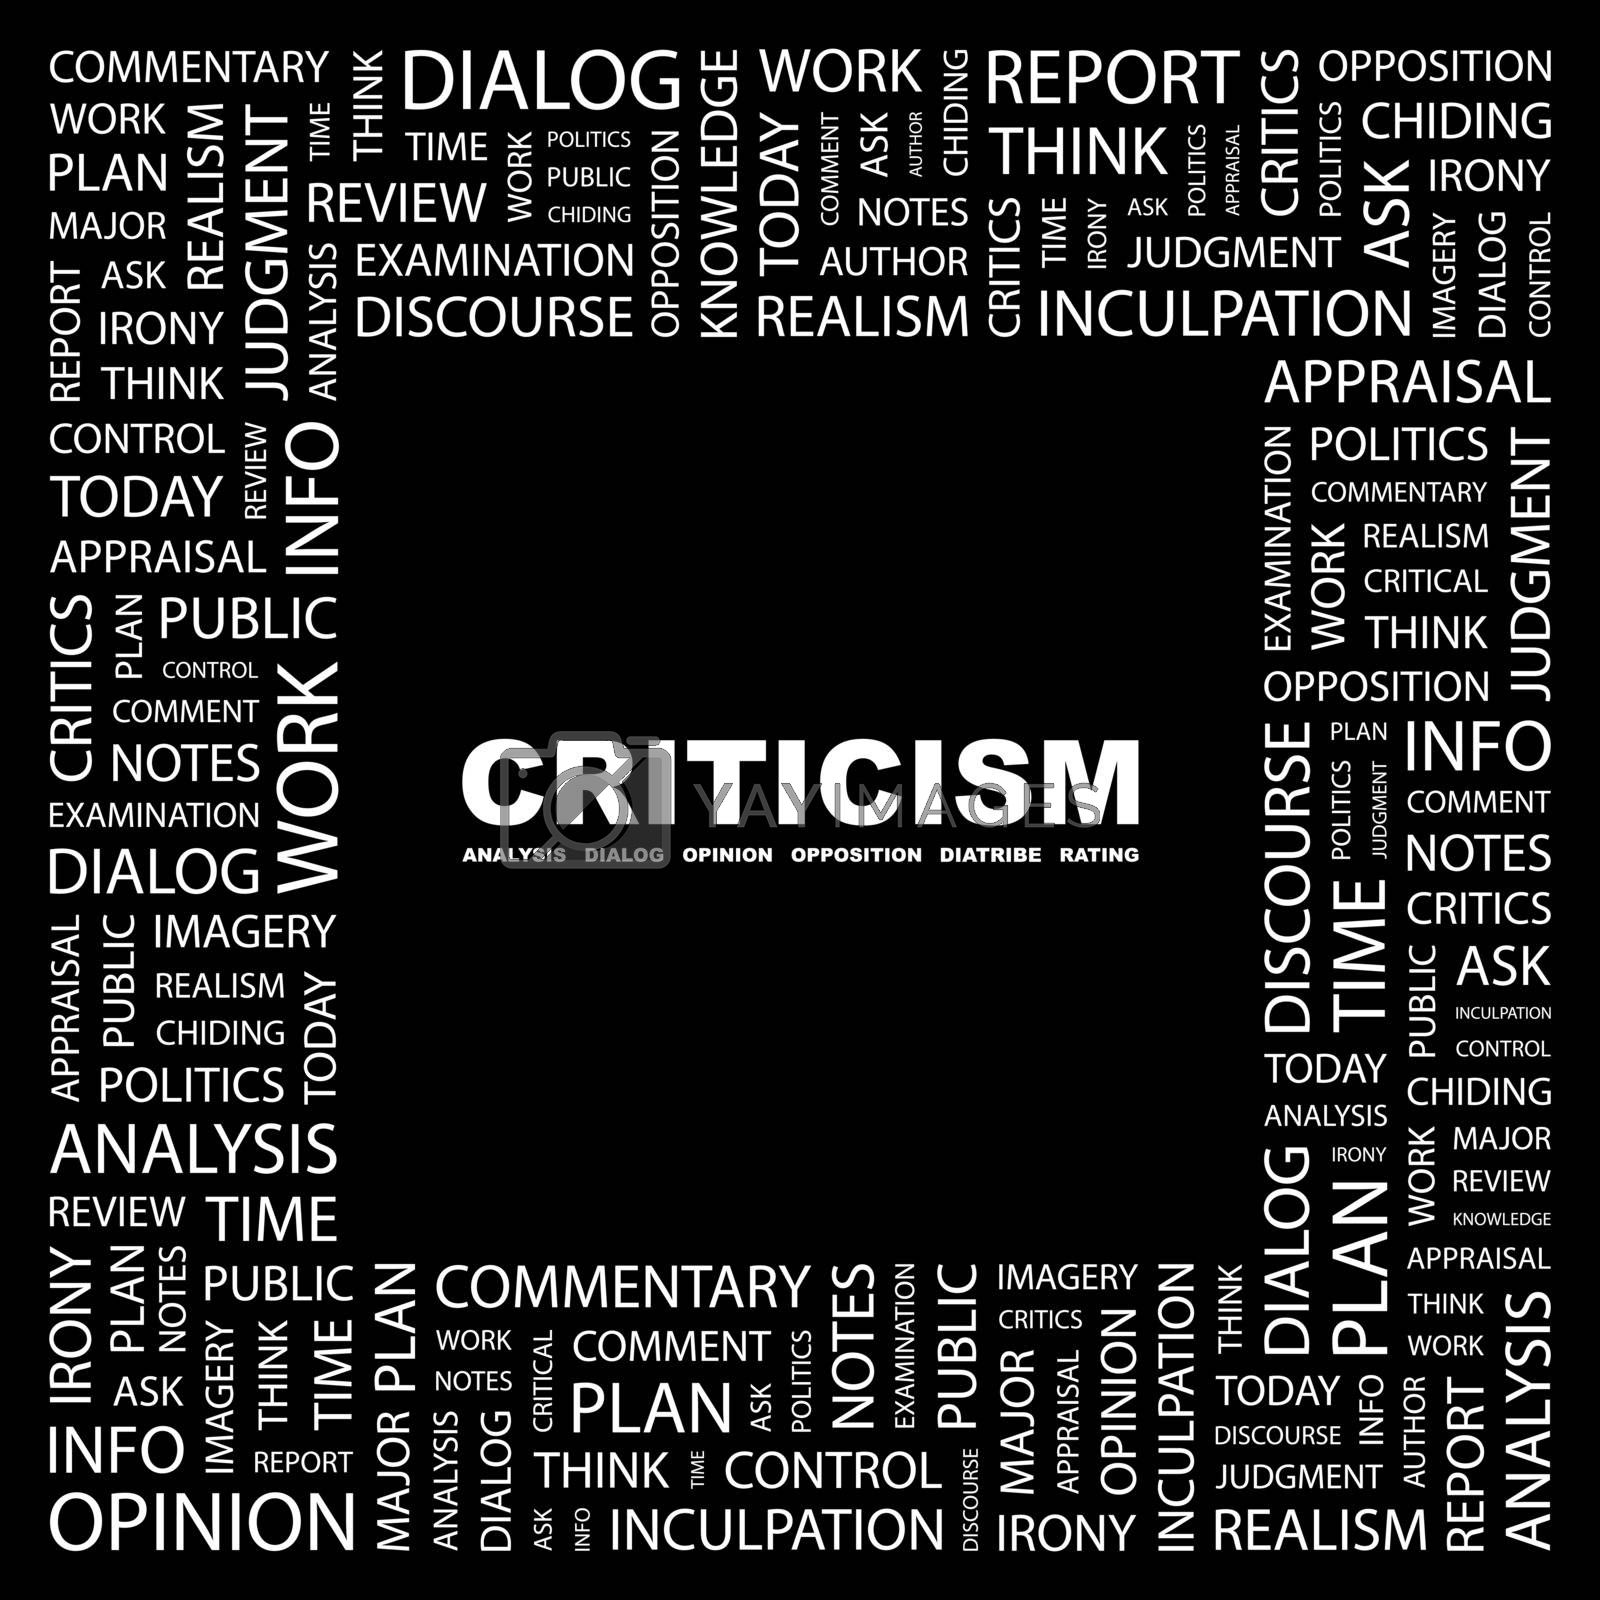 CRITICISM. Concept illustration. Graphic tag collection. Wordcloud collage.